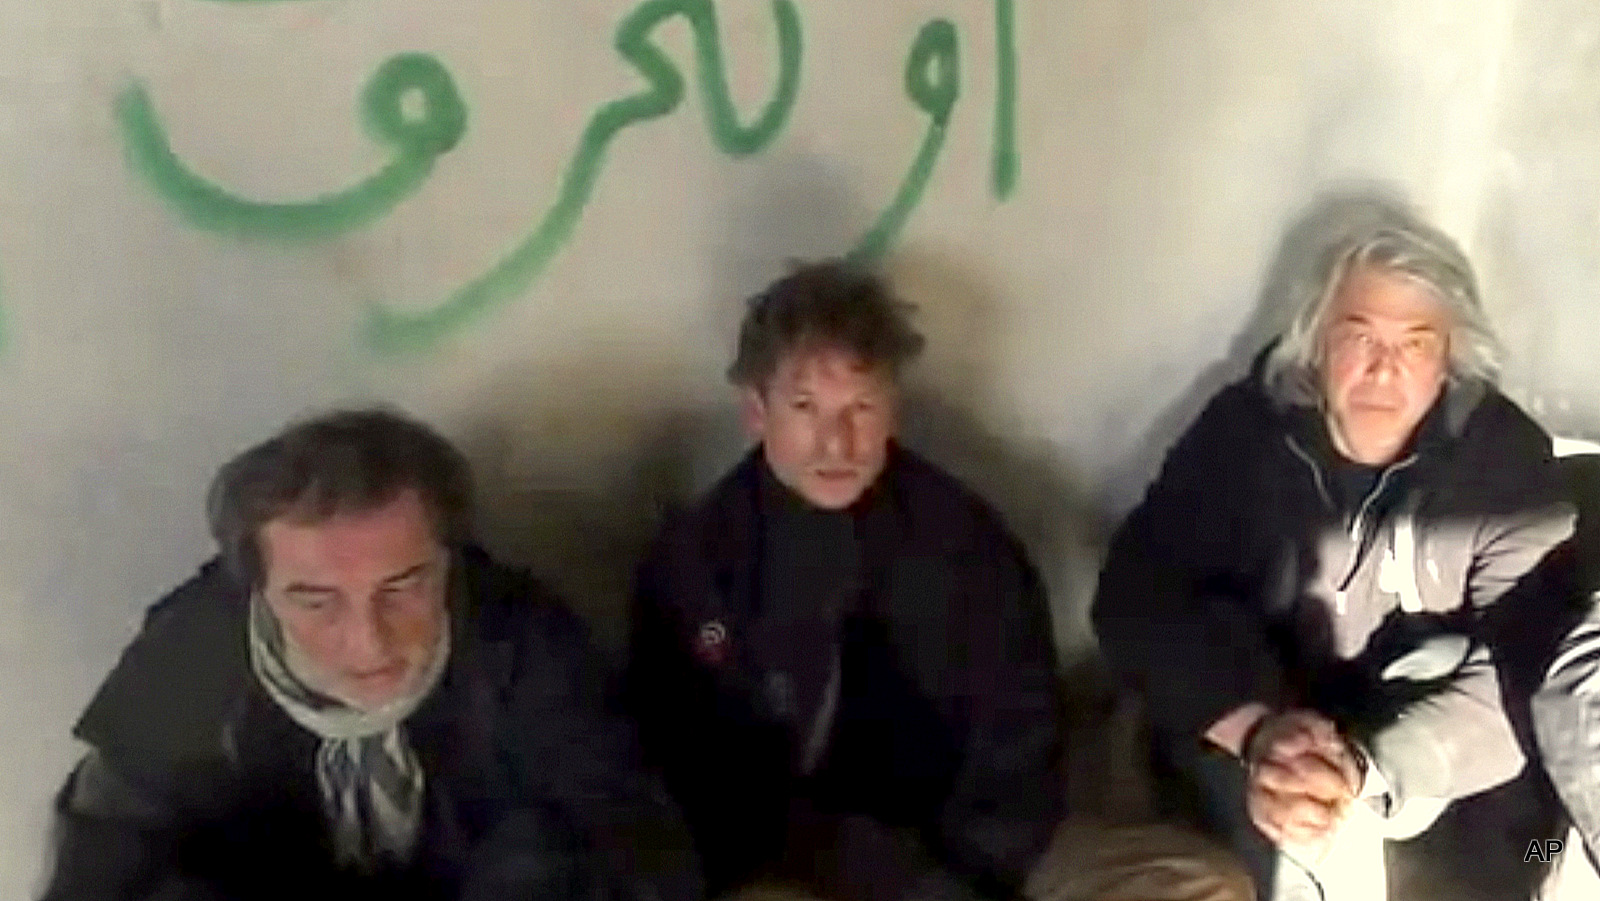 This image taken from undated amateur video posted on the Internet shows NBC chief foreign correspondent Richard Engel, center, with NBC Turkey reporter Aziz Akyavas, left, and NBC photographer John Kooistra, right, after they were taken hostage in Syria. More than a dozen heavily armed gunmen kidnapped and held Engel and several colleagues for five days inside Syria, keeping them blindfolded and tied up before they finally escaped unharmed during a firefight between their captors and anti-regime rebels, Engel claimed, but later admitted it was actually the rebels who carried out the kidnapping.